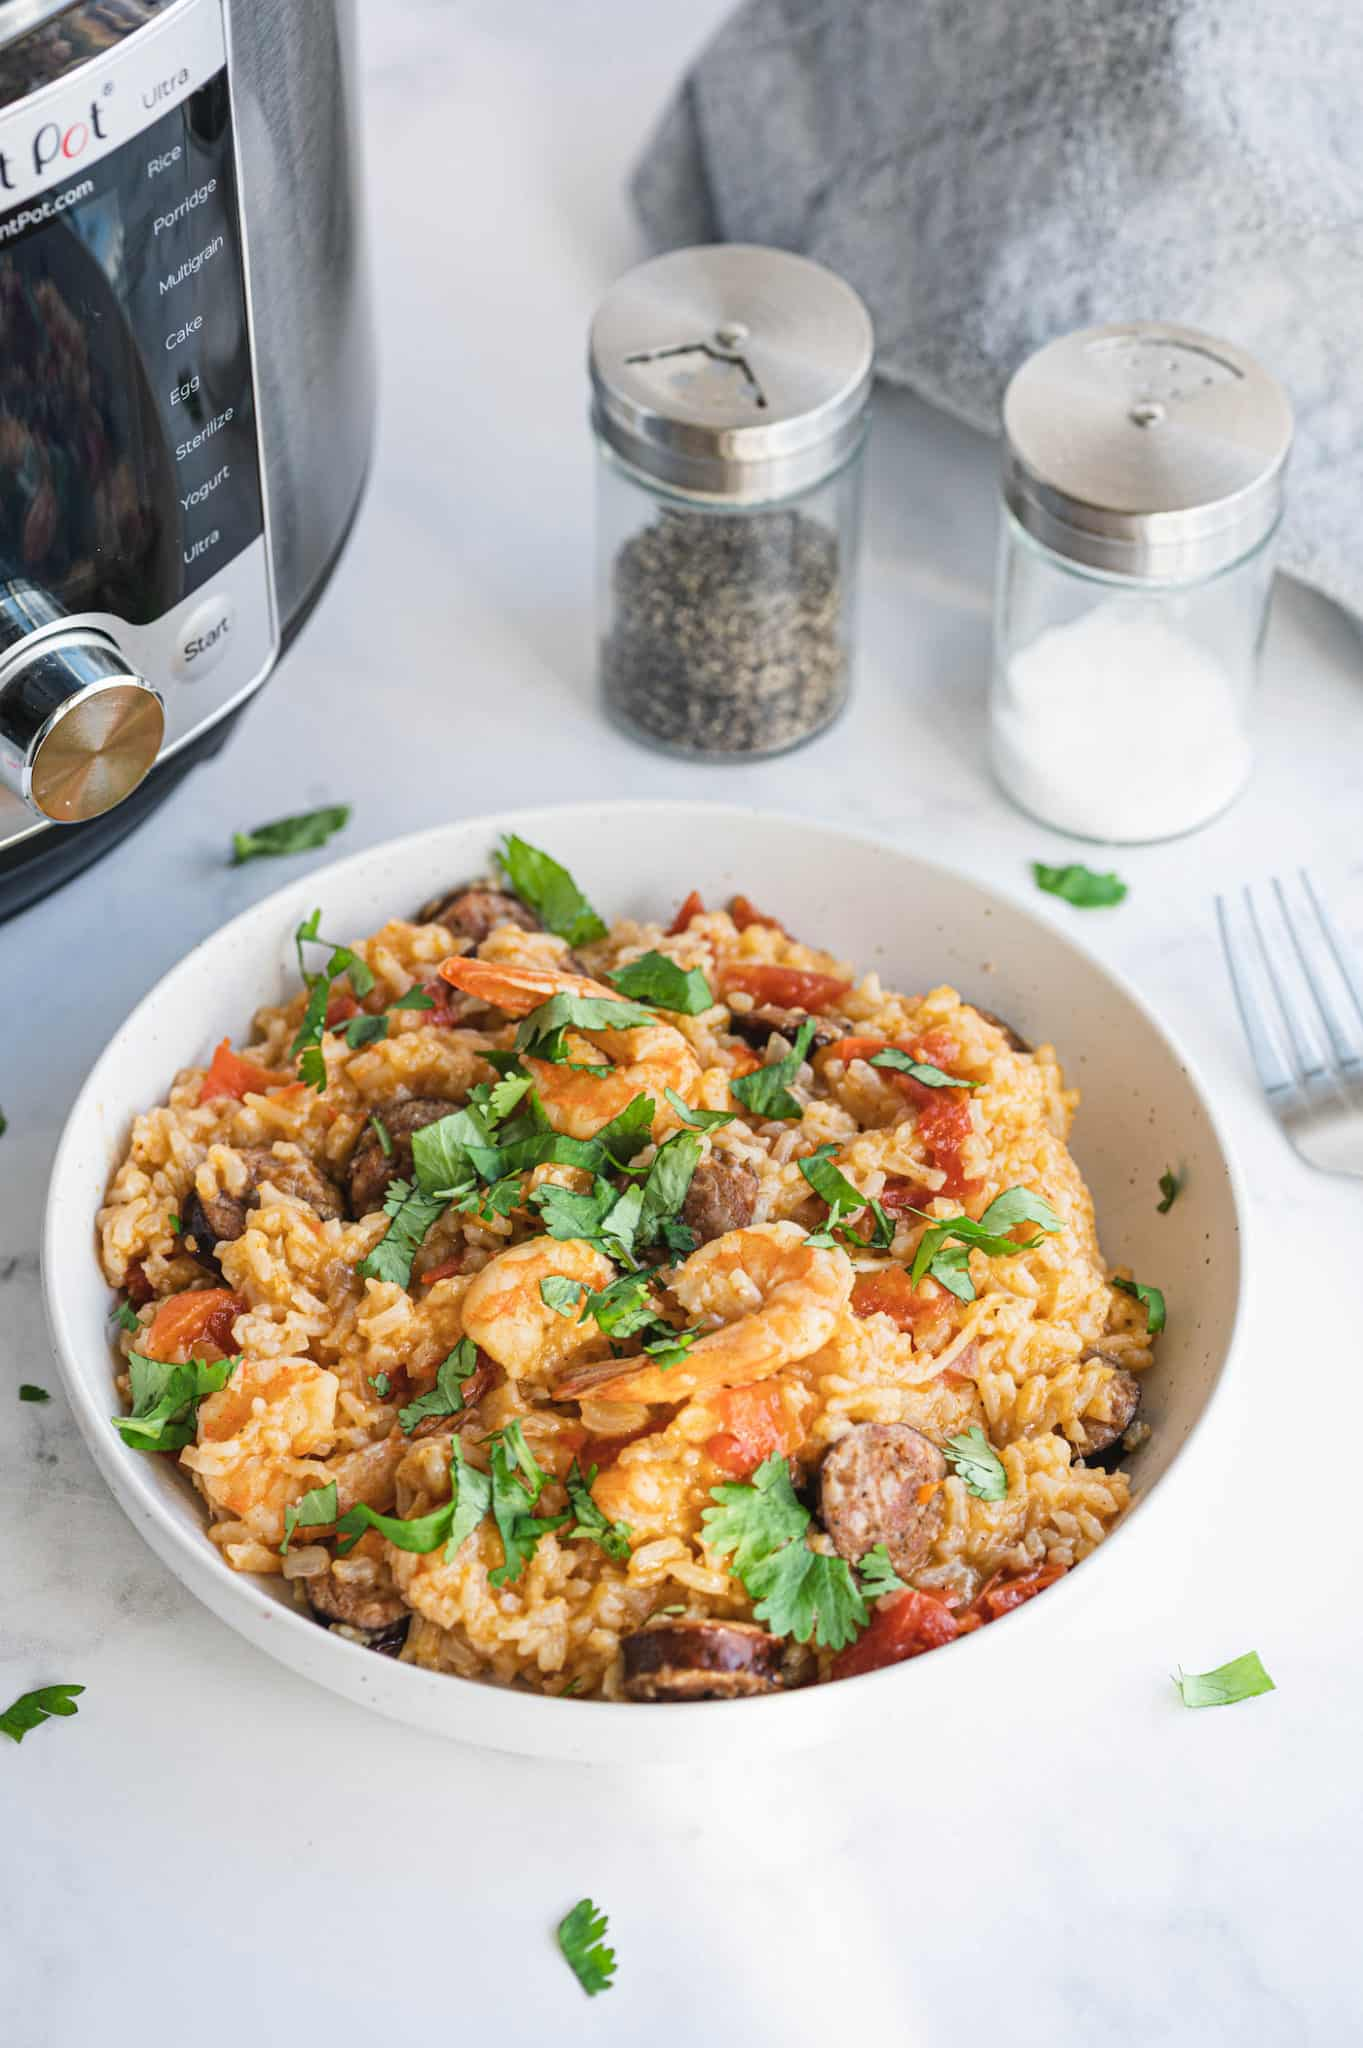 A bowl of jambalaya with shrimp and sausage